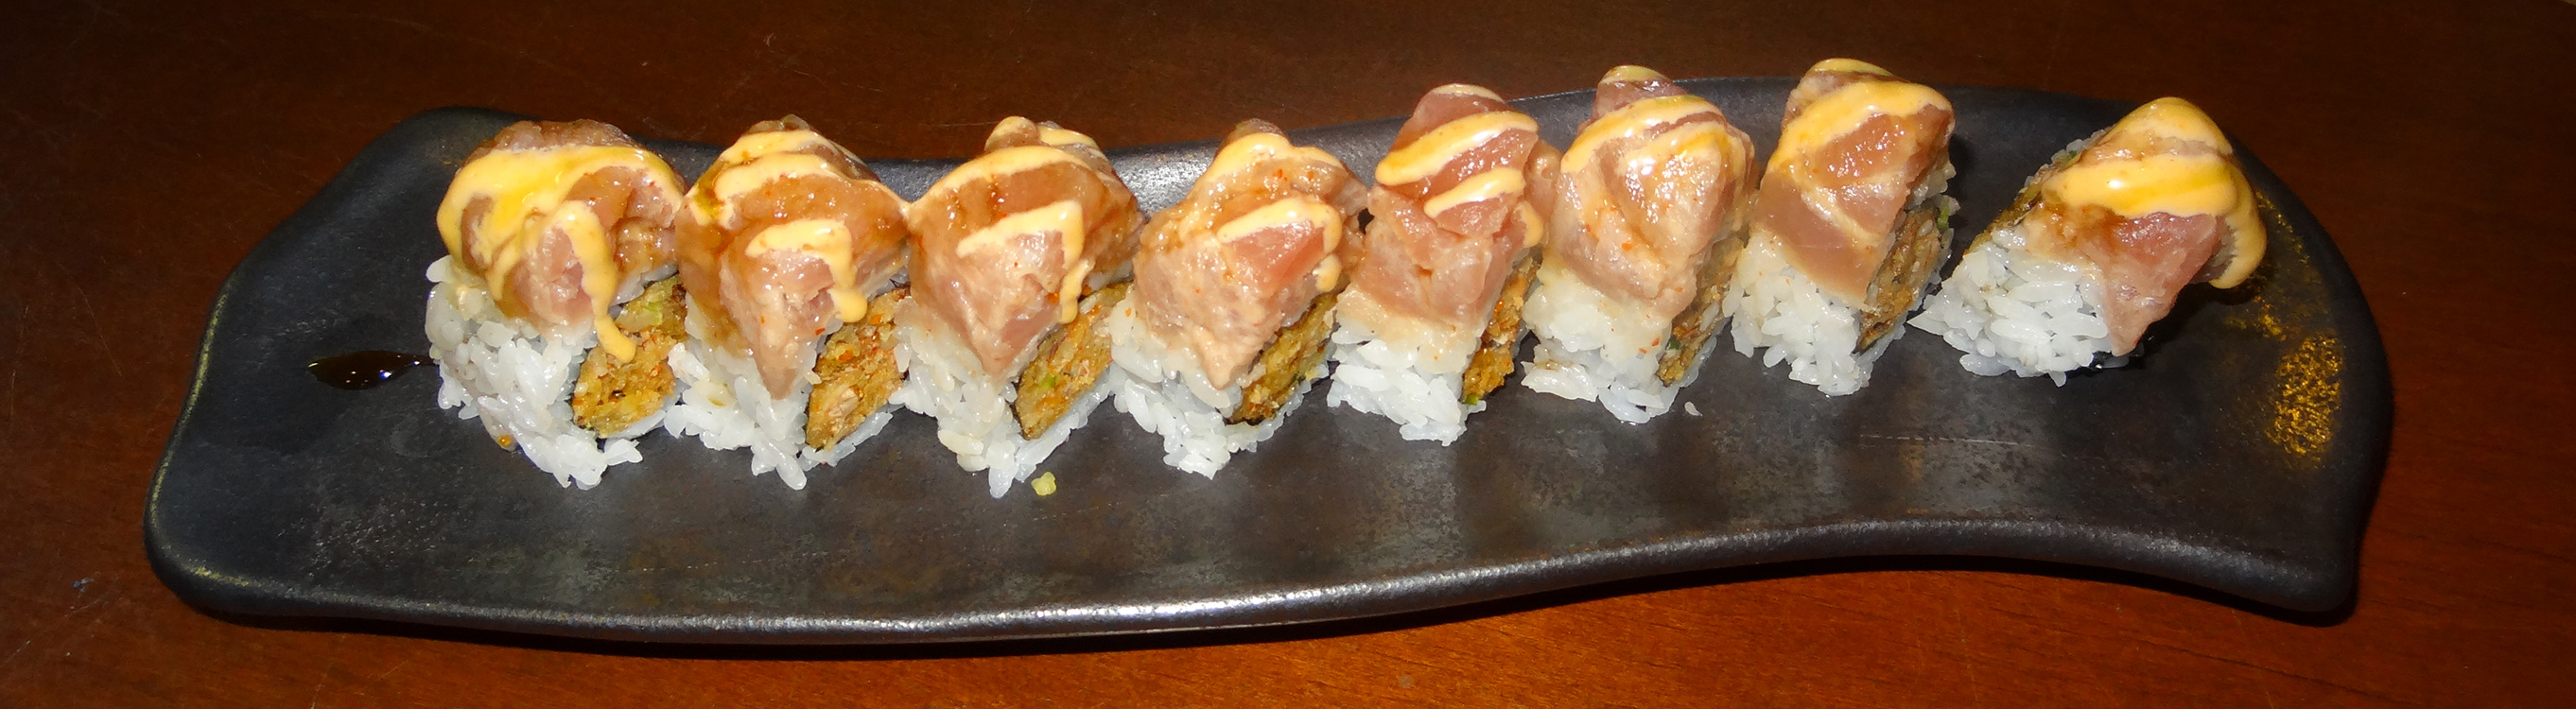 808 Special Sushi Roll, Happy Hour at 808 Tapas, Summerlin Vegas